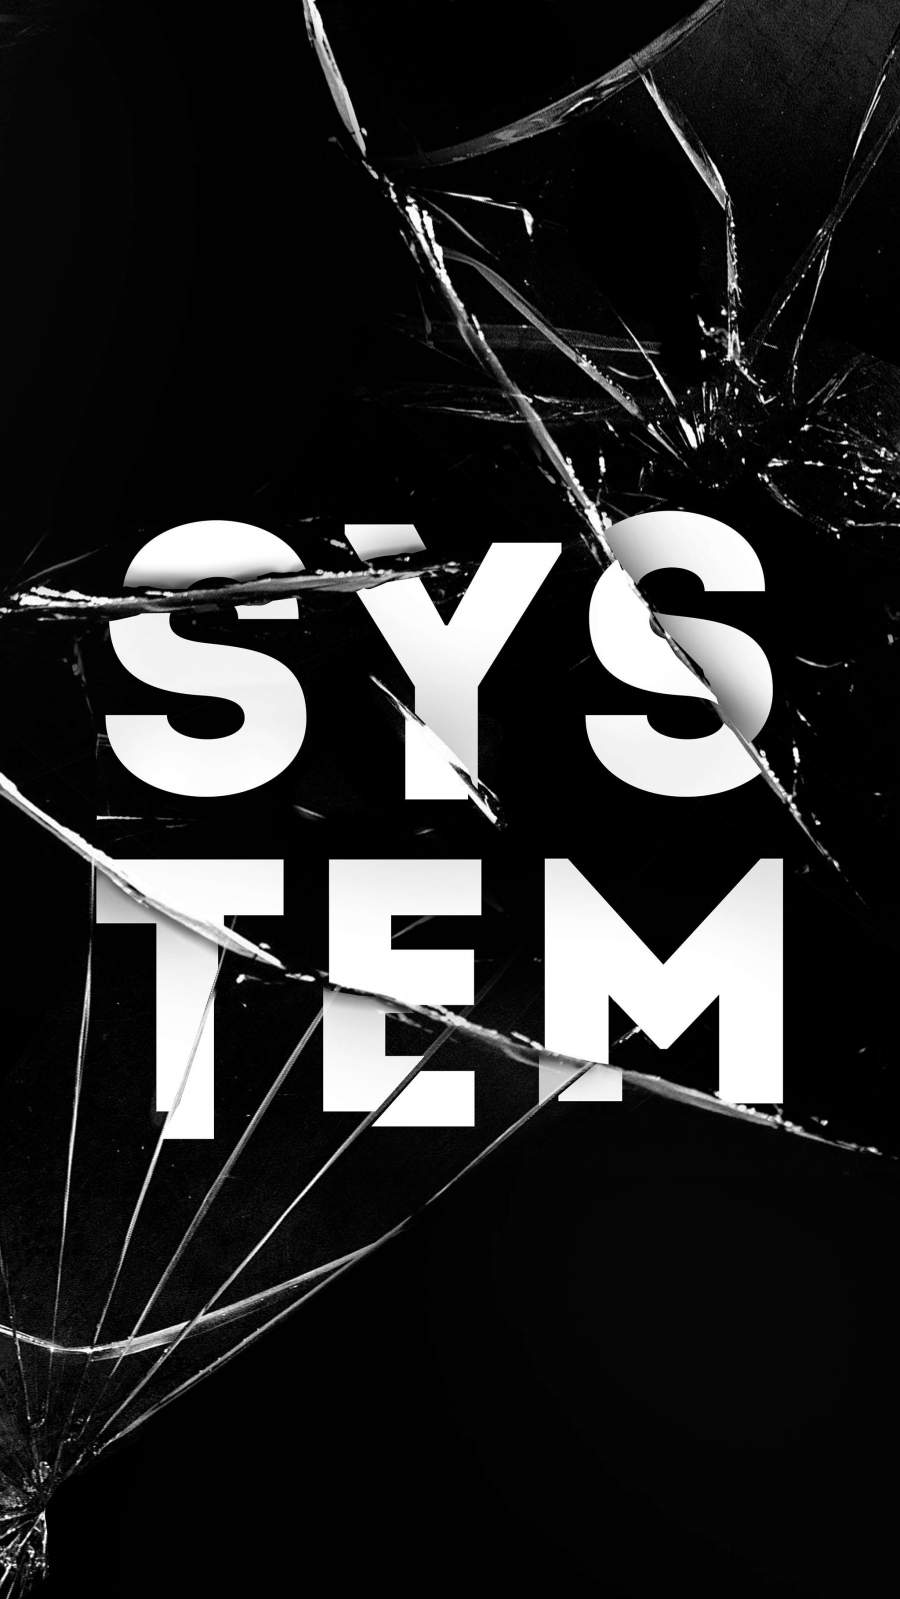 System iPhone Wallpaper